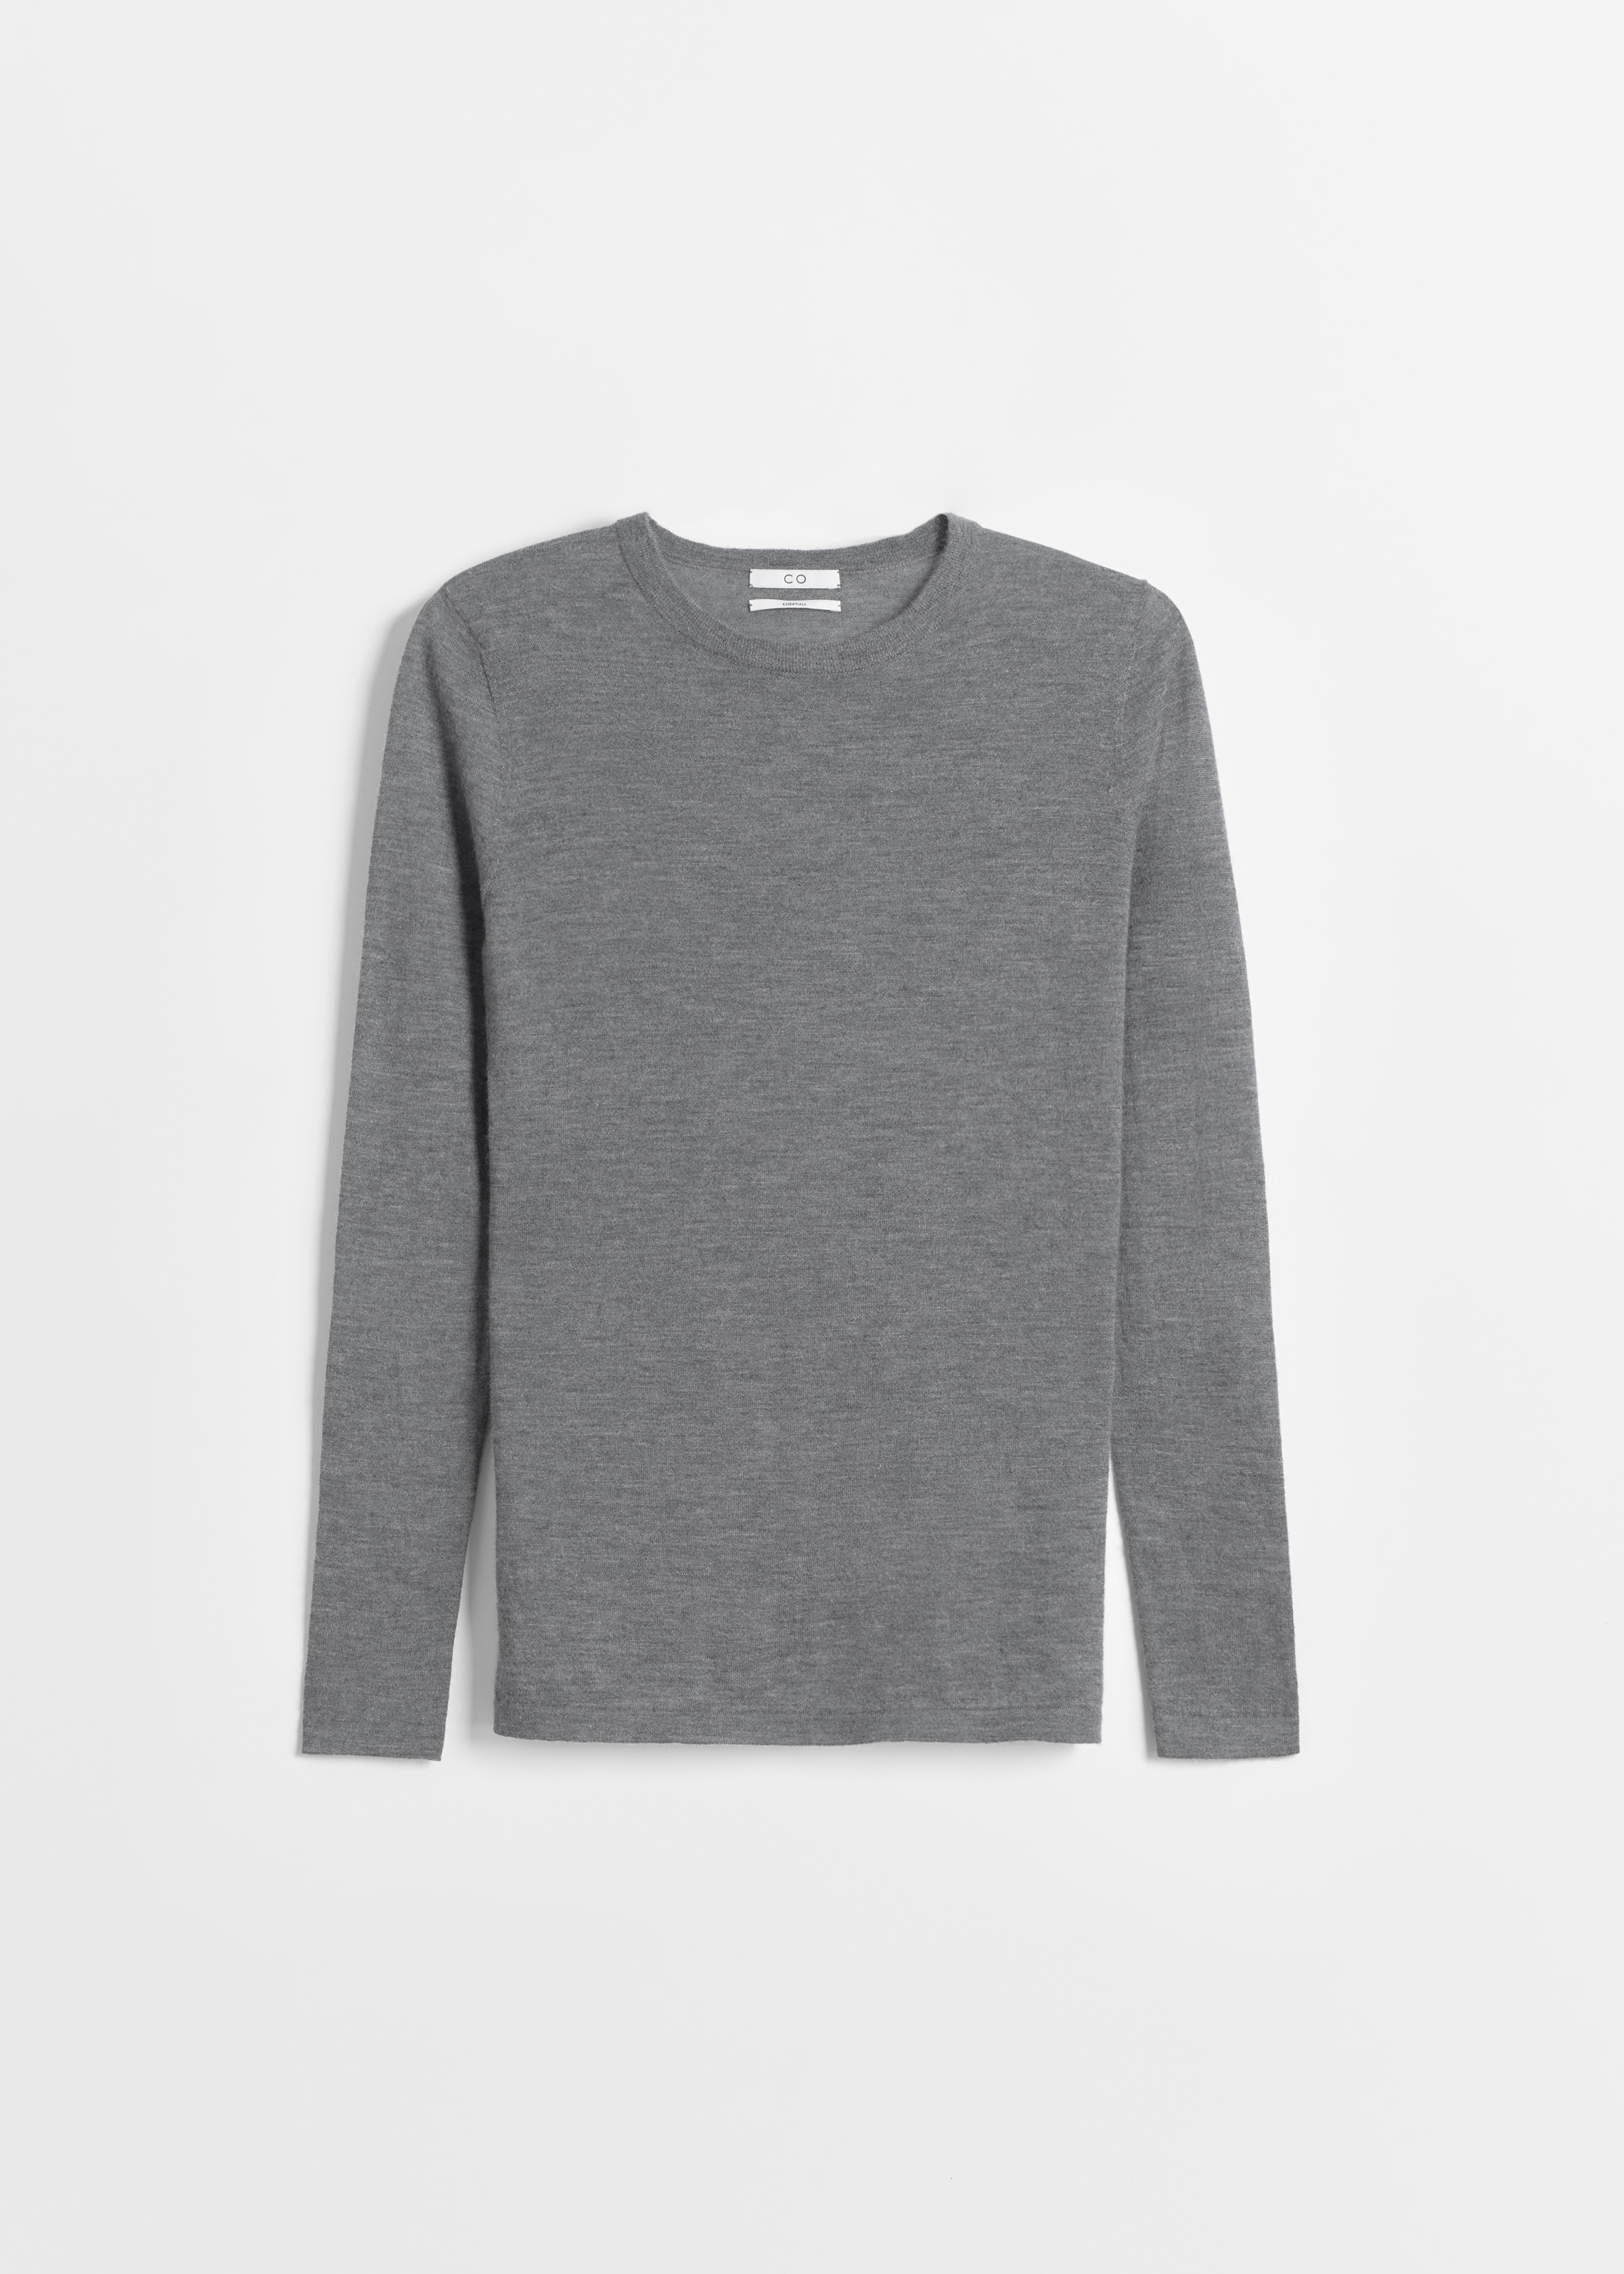 Long Sleeve Cashmere Crew Neck - Taupe in Grey by Co Collections